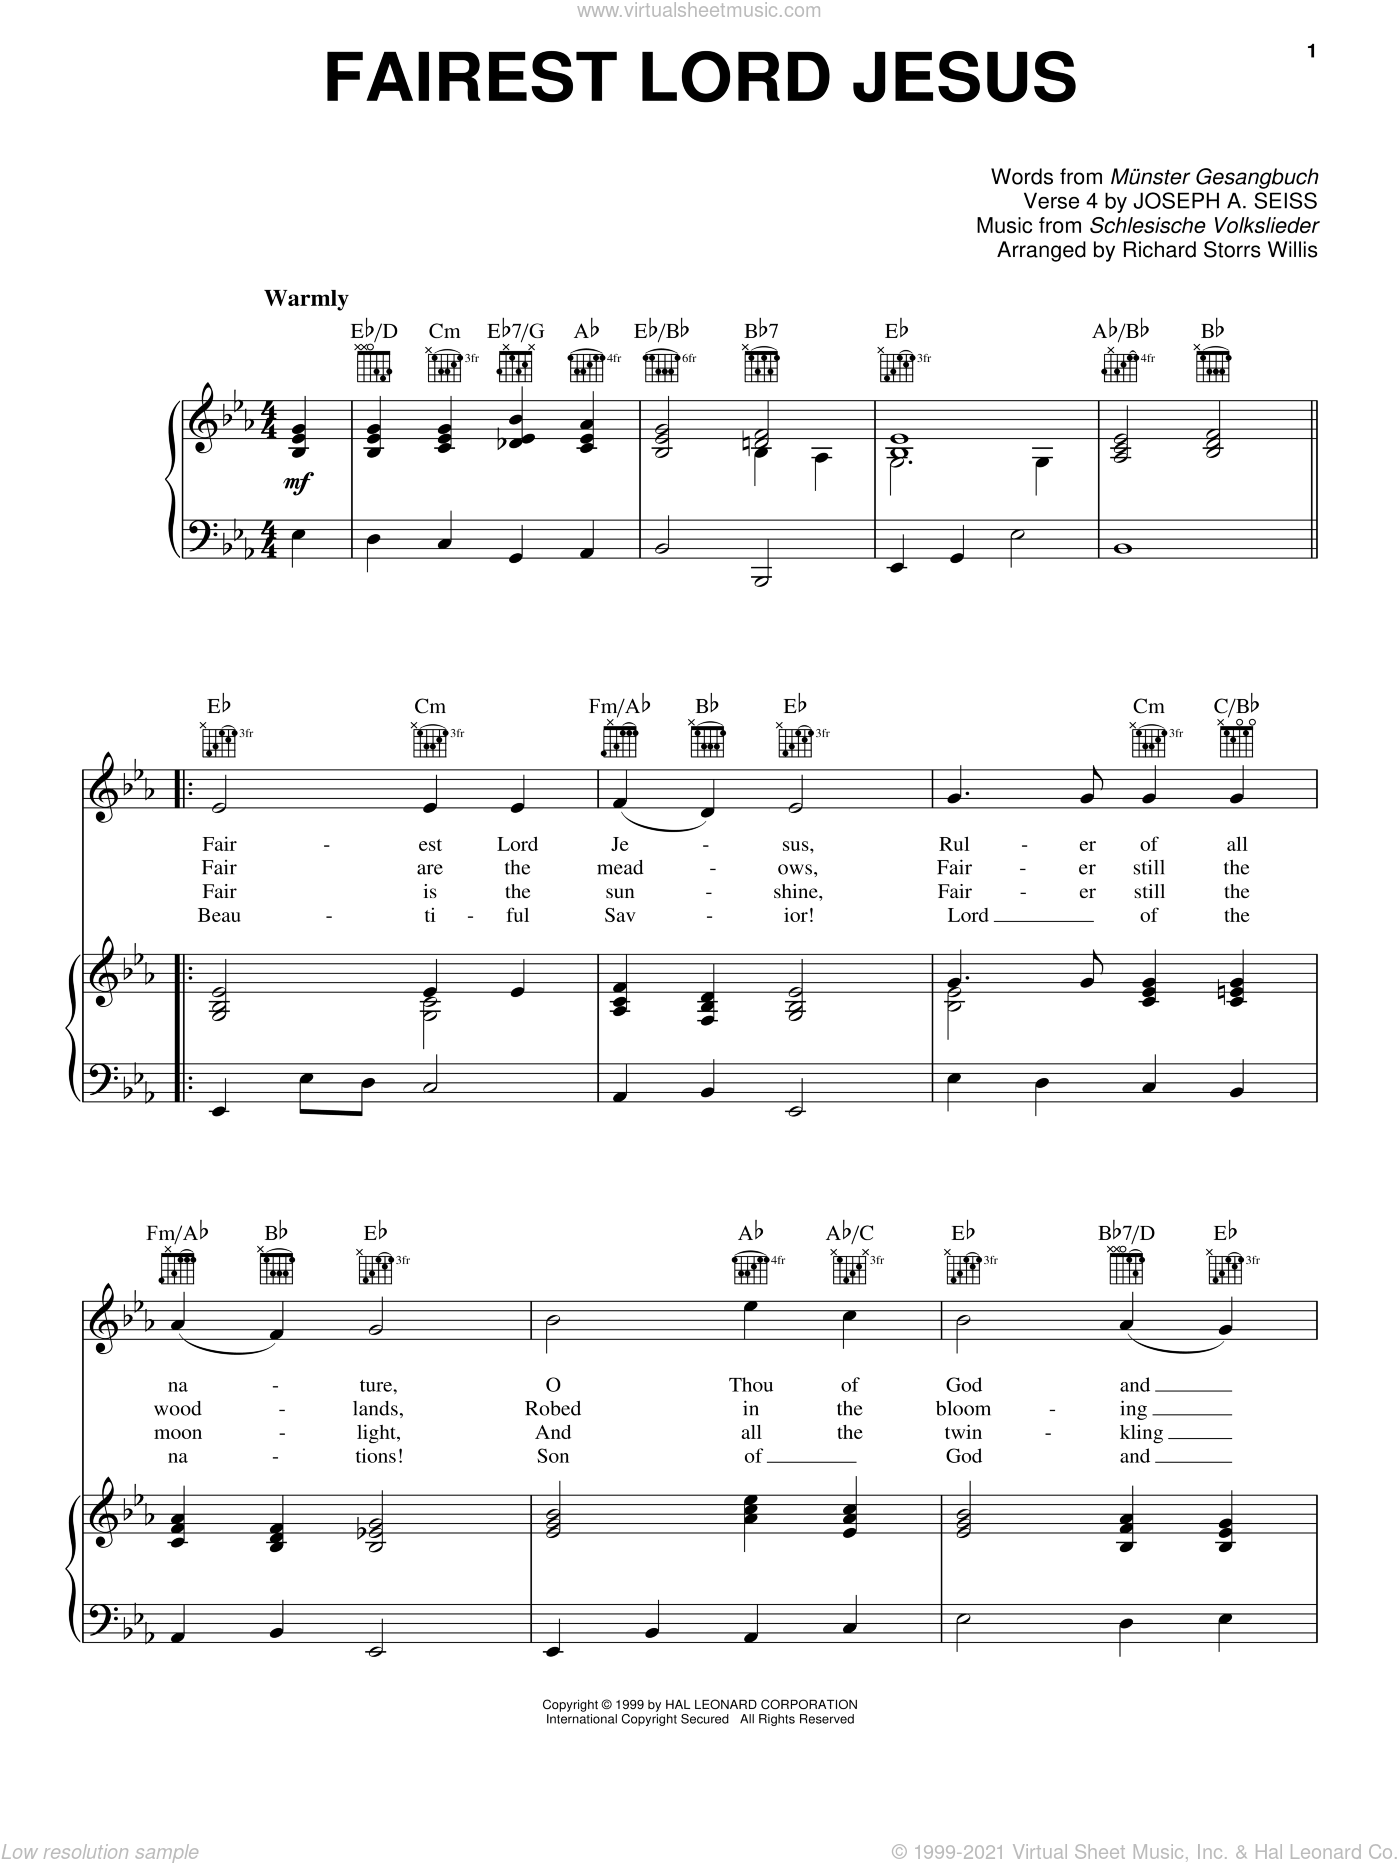 Fairest Lord Jesus sheet music for voice, piano or guitar by Schlesische Volkslieder